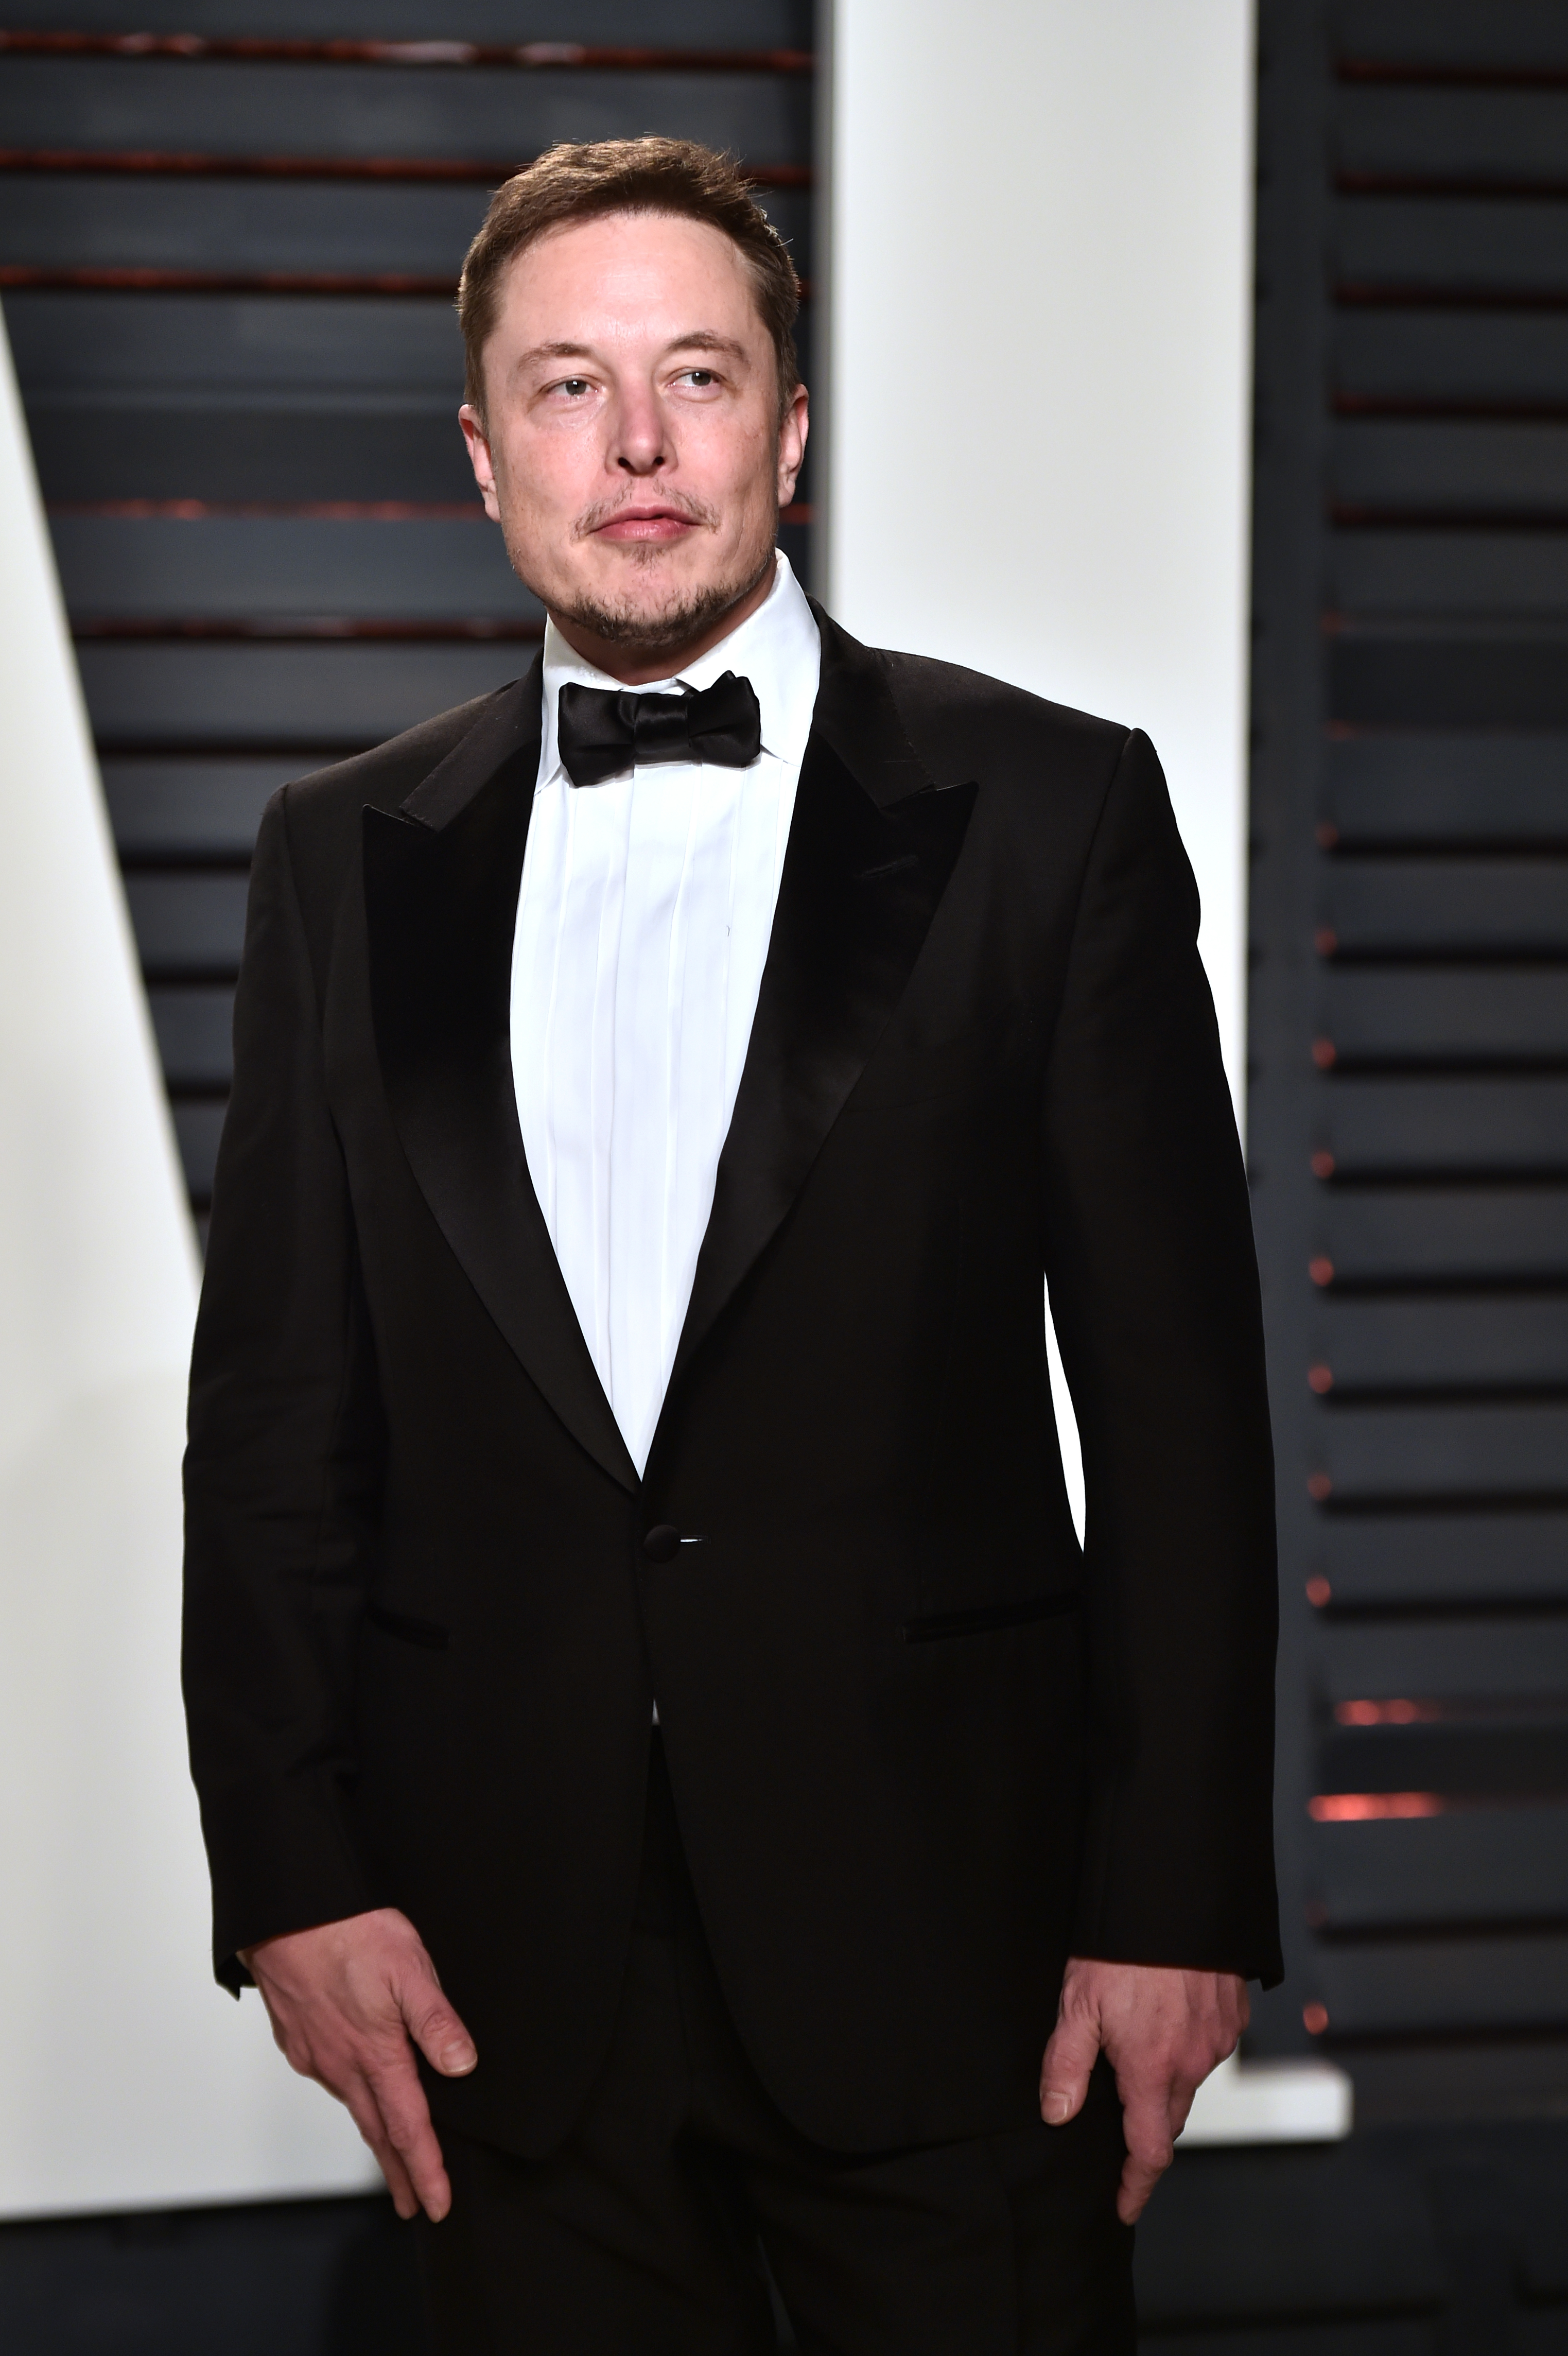 Elon Musk says he can fix Australia in 100 days. He might be telling the truth.